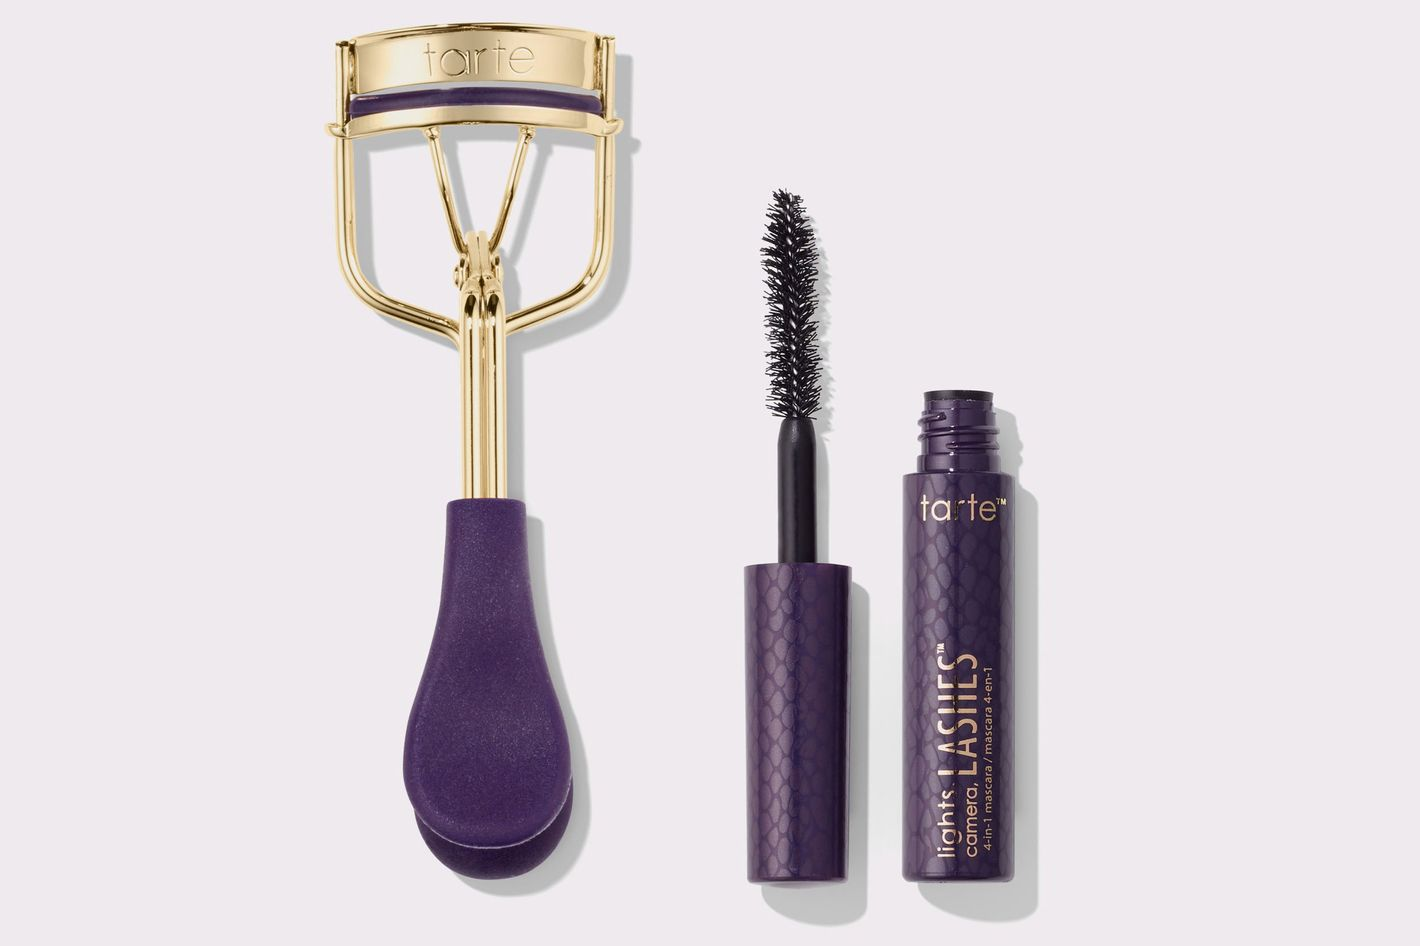 40eb3f78113 TARTE Picture Perfect Eyelash Curler Duo